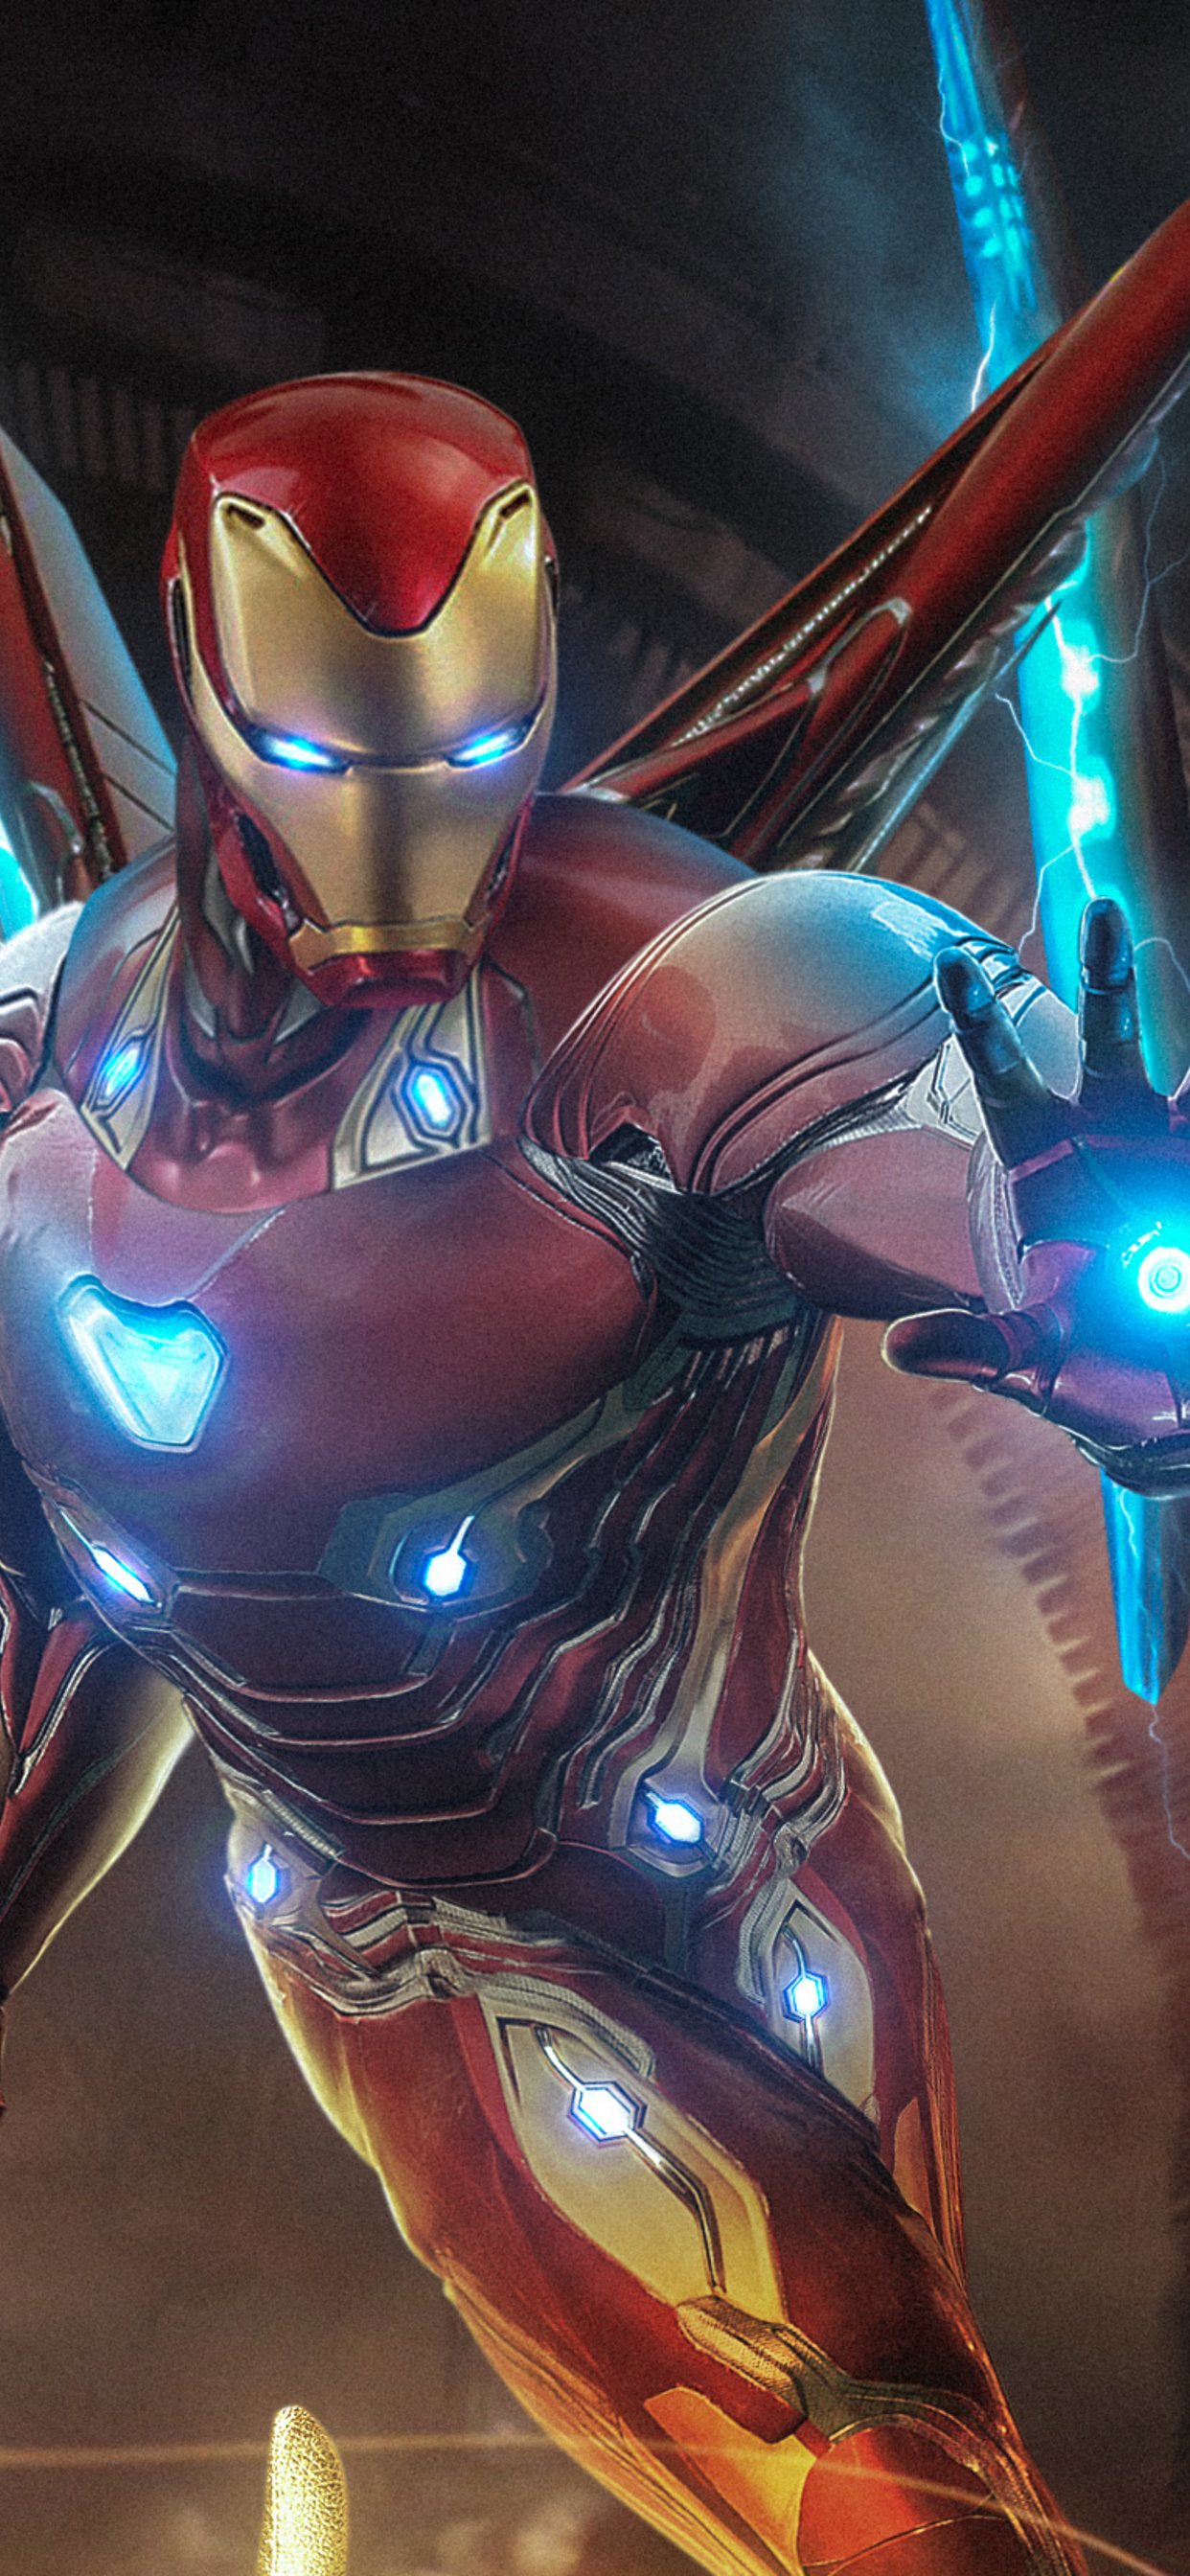 1242x2688 Iron Man Endgame Iphone Xs Max Hd 4k Wallpapers Images